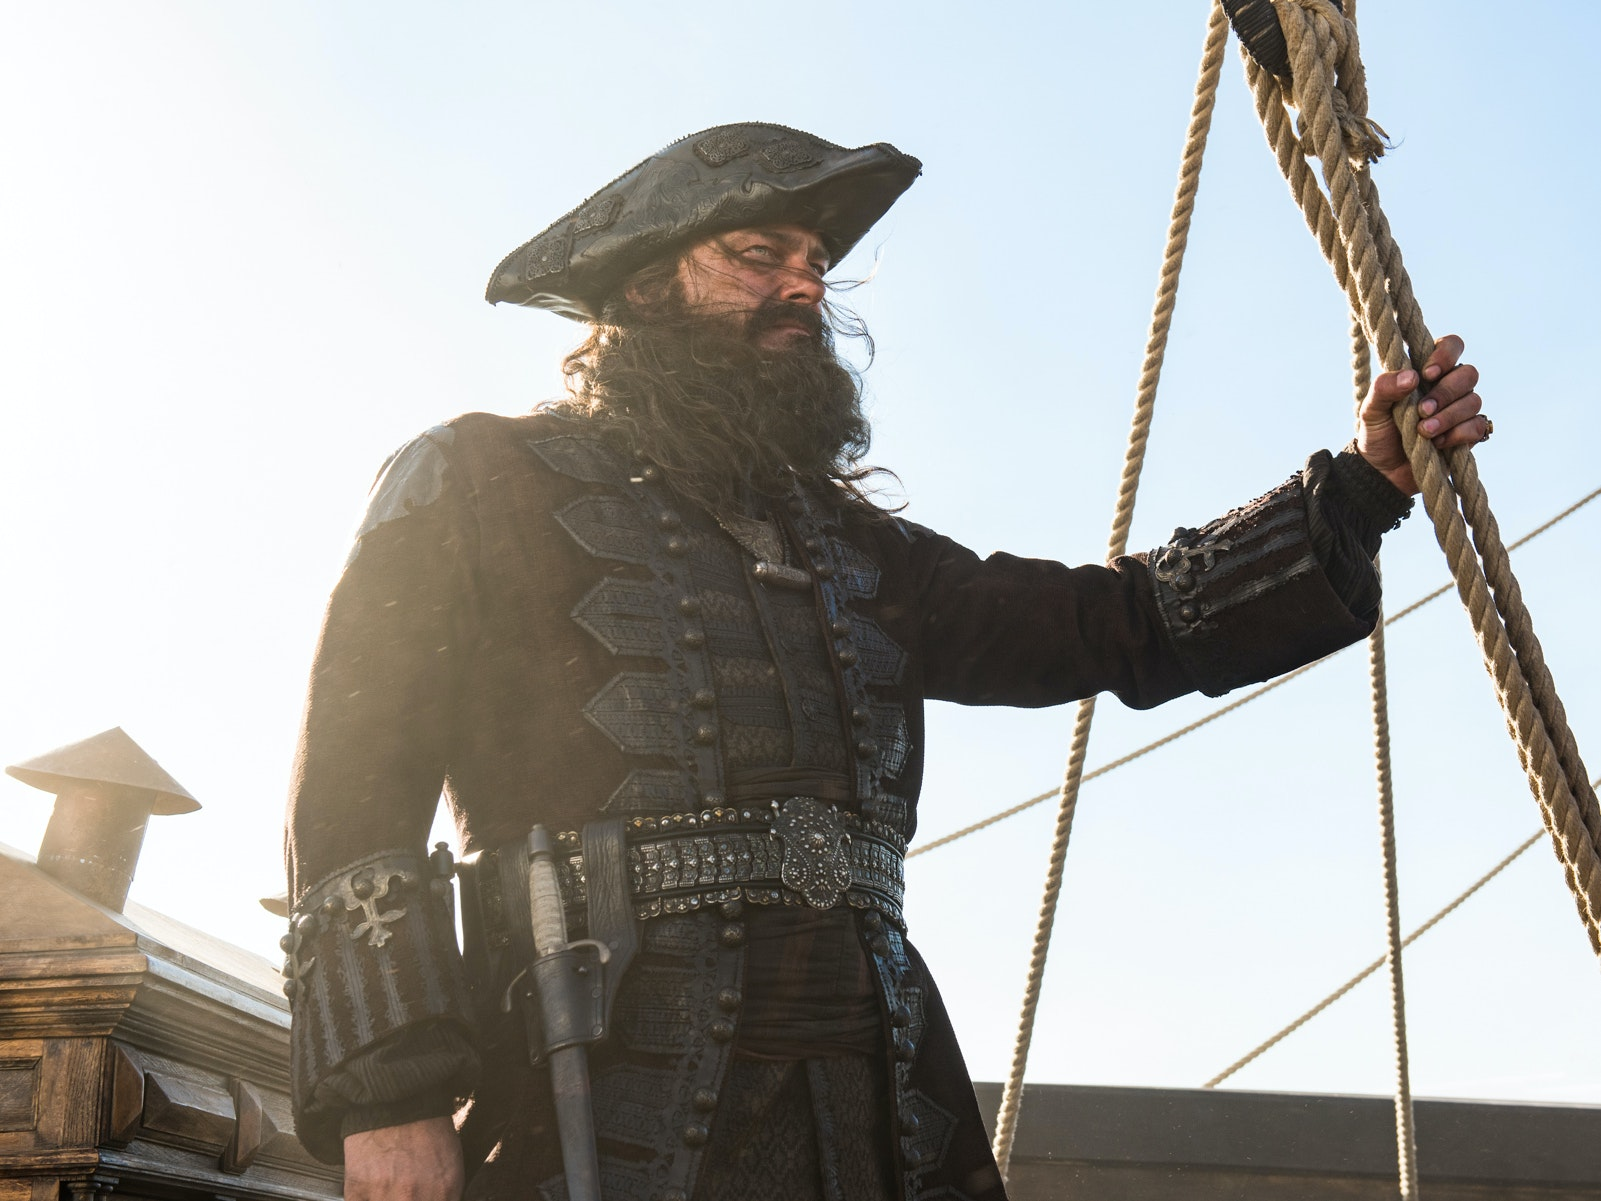 'Black Sails' Exclusive: Blackbeard Prepares for Season 4